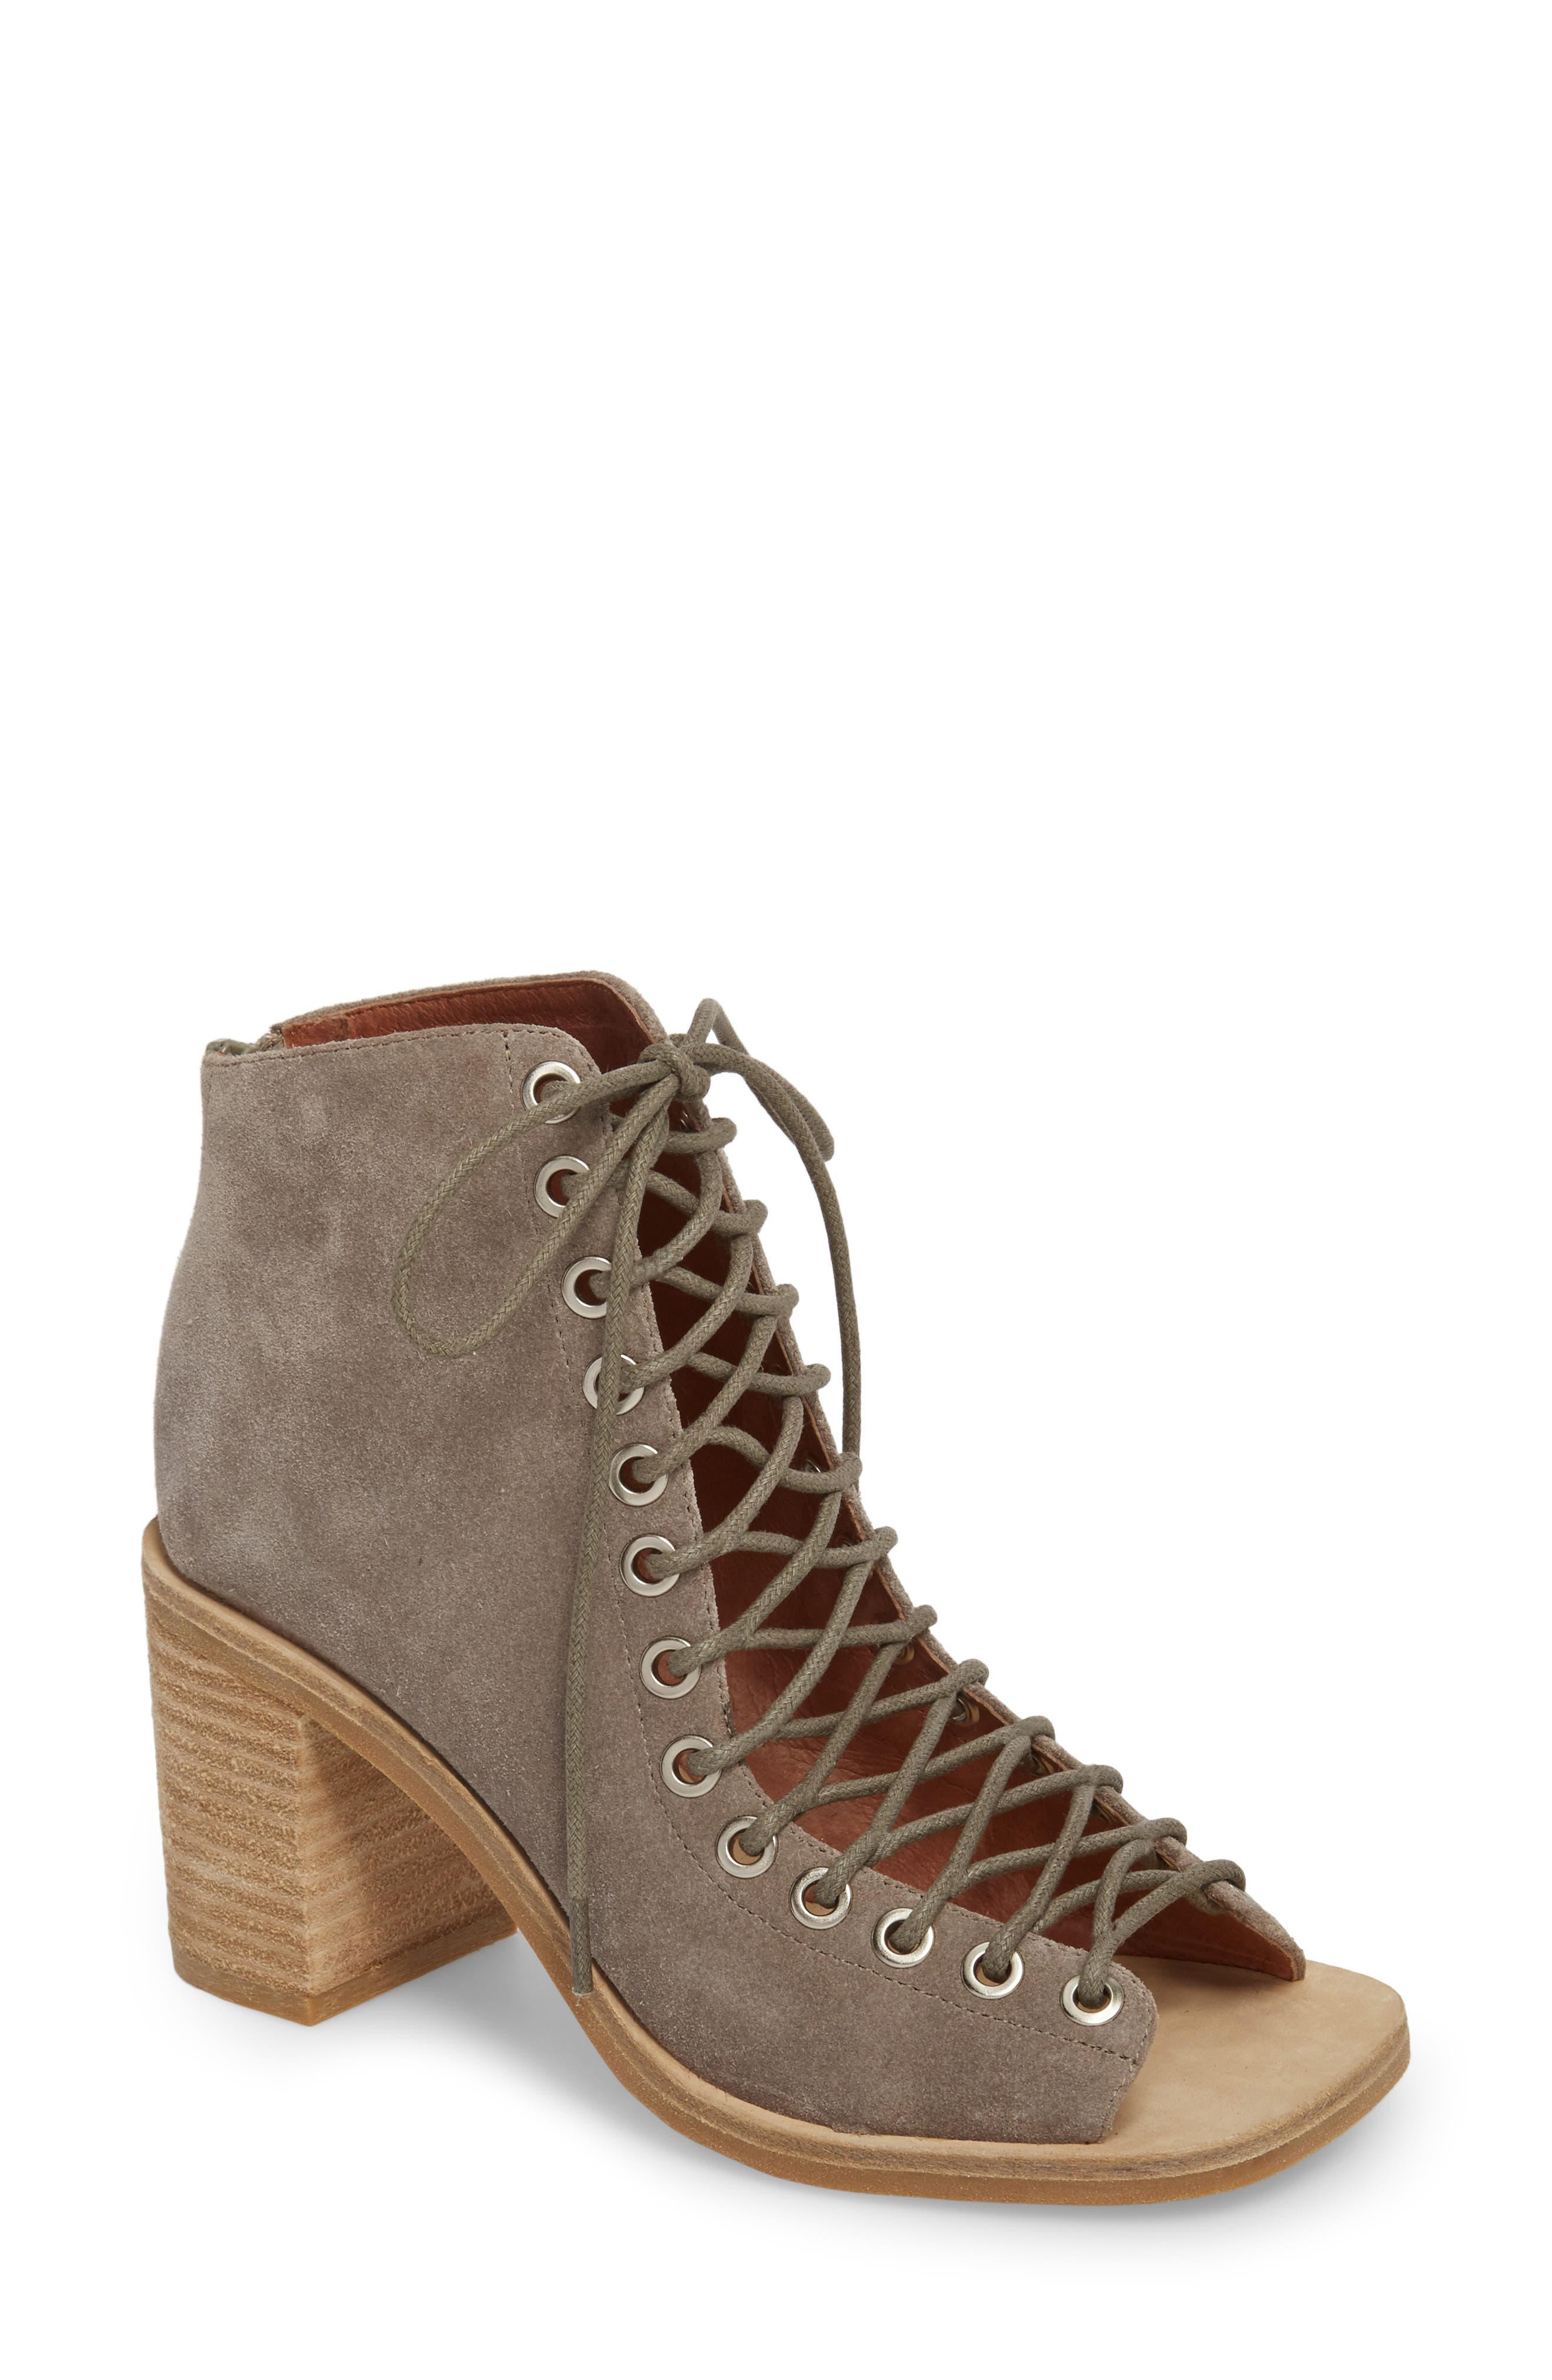 Cors Bootie,                         Main,                         color, TAUPE SUEDE